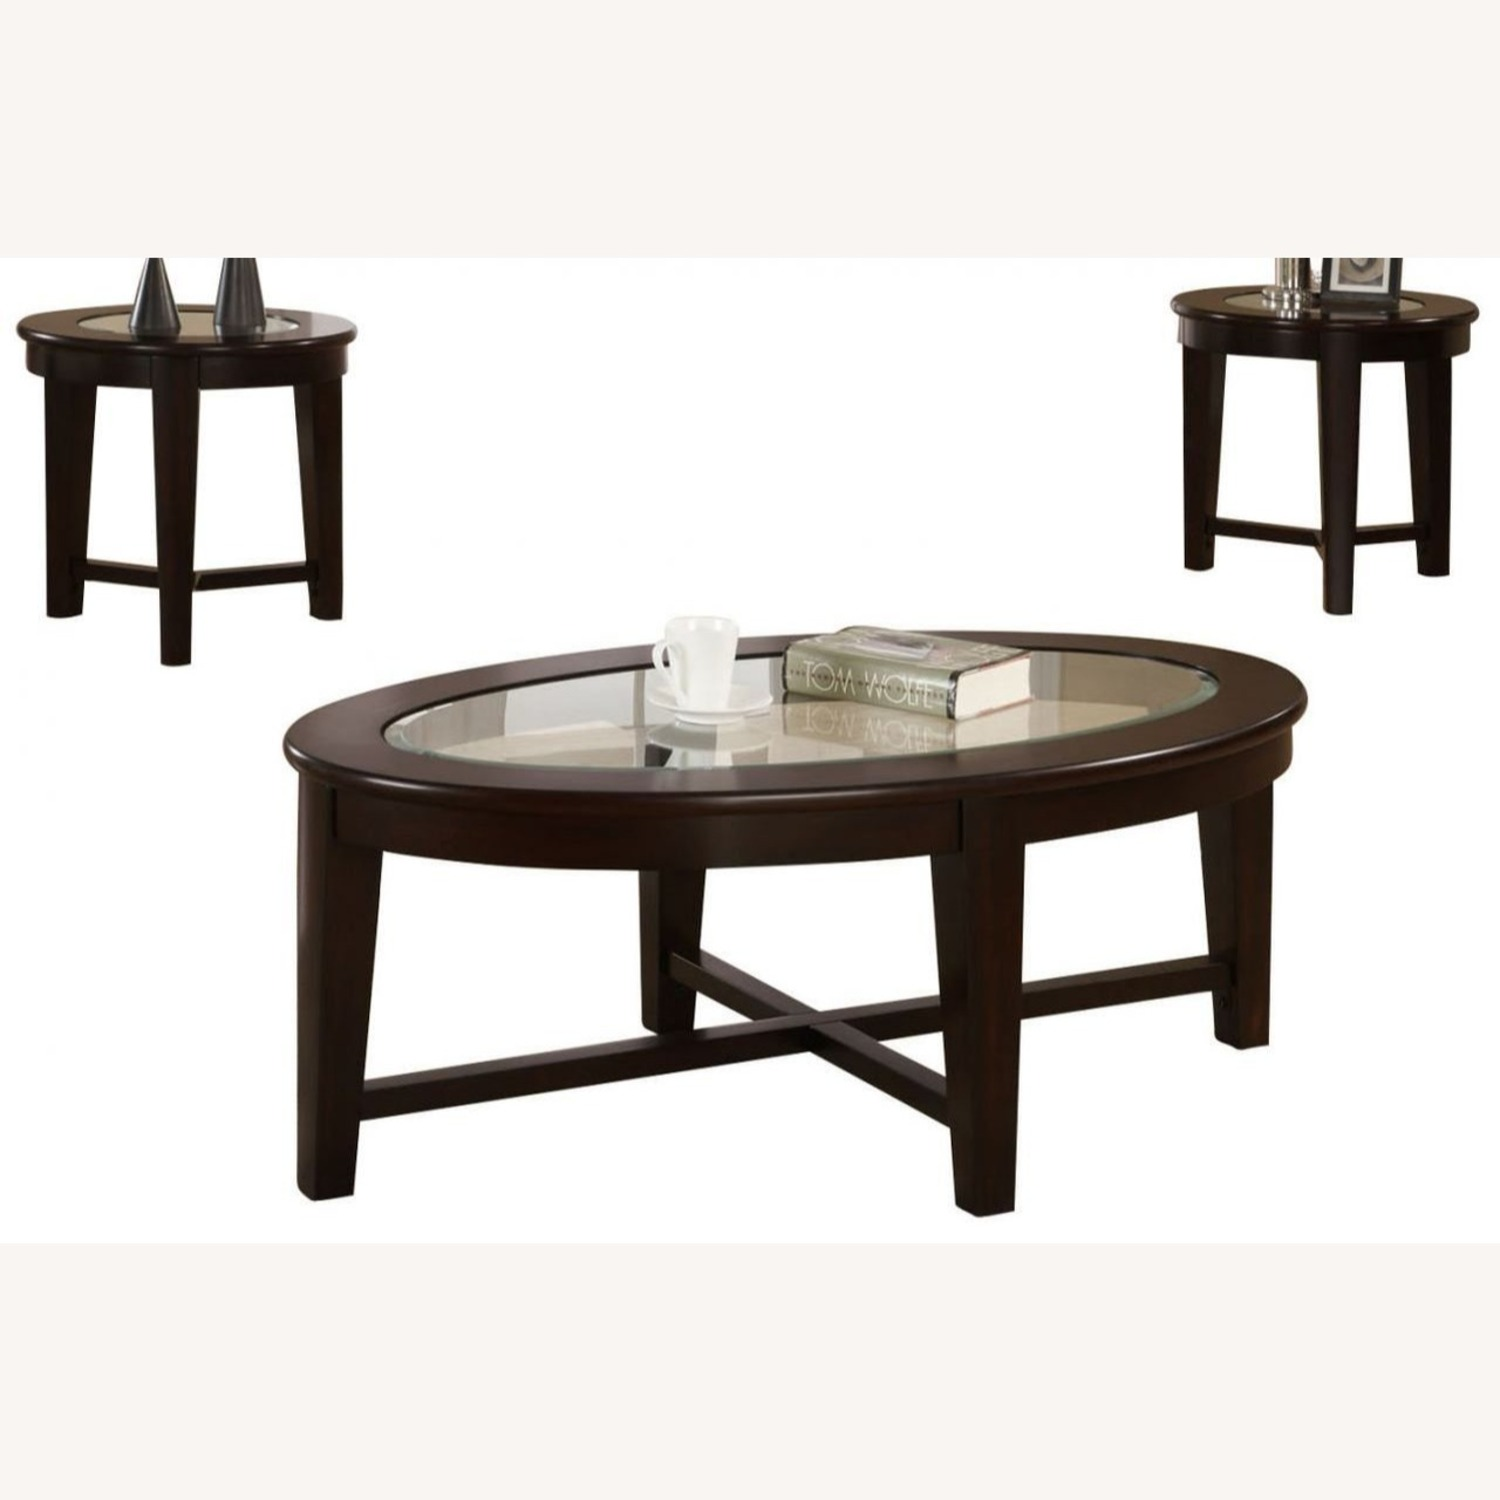 3-Piece Occasional Set In Cappuccino Finish - image-0